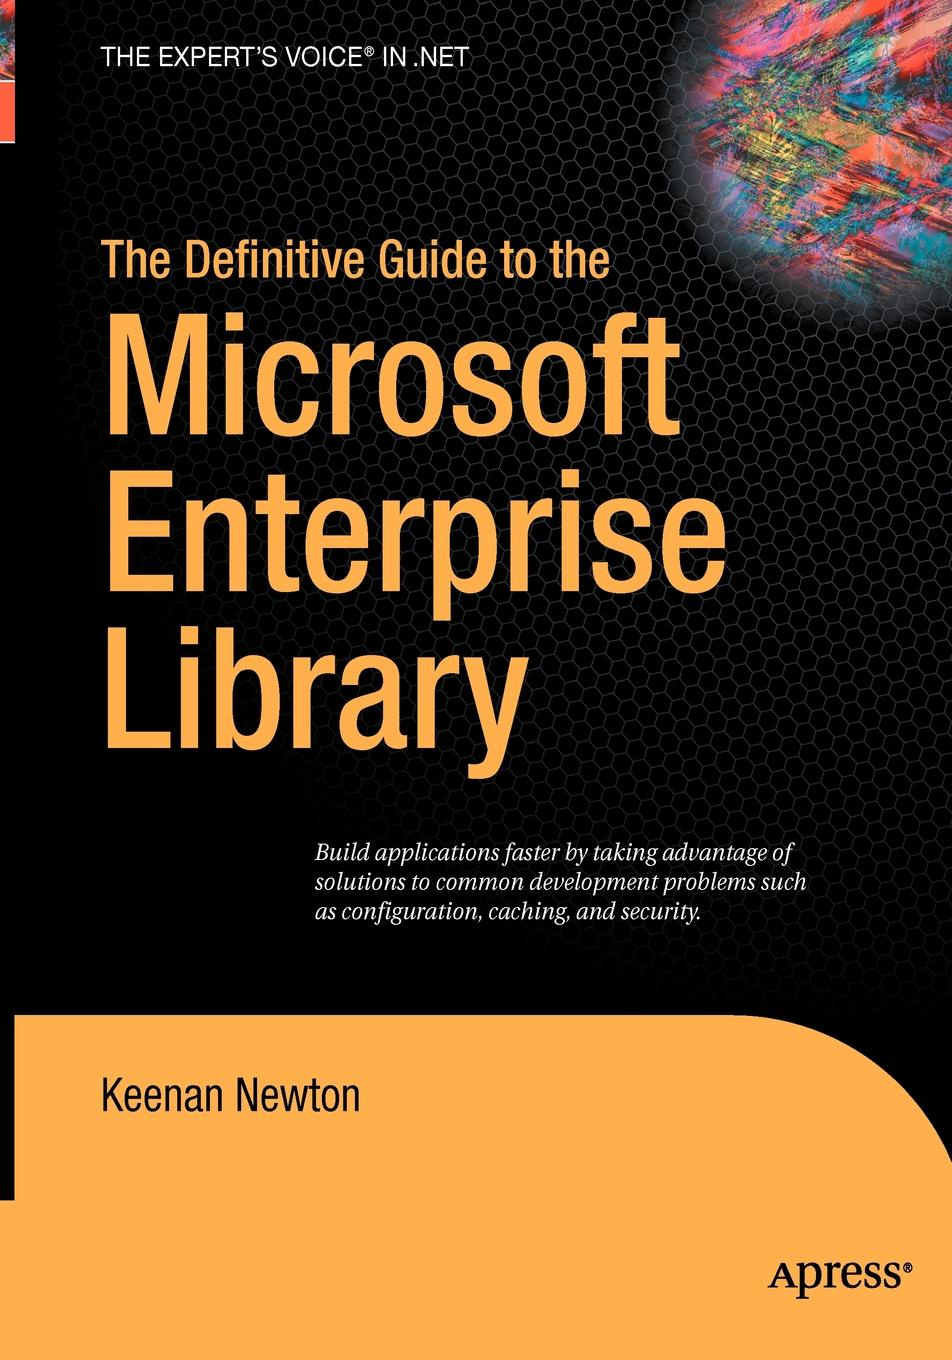 Keenan Newton The Definitive Guide to the Microsoft Enterprise Library daniel brian the definitive guide to berkeley db xml